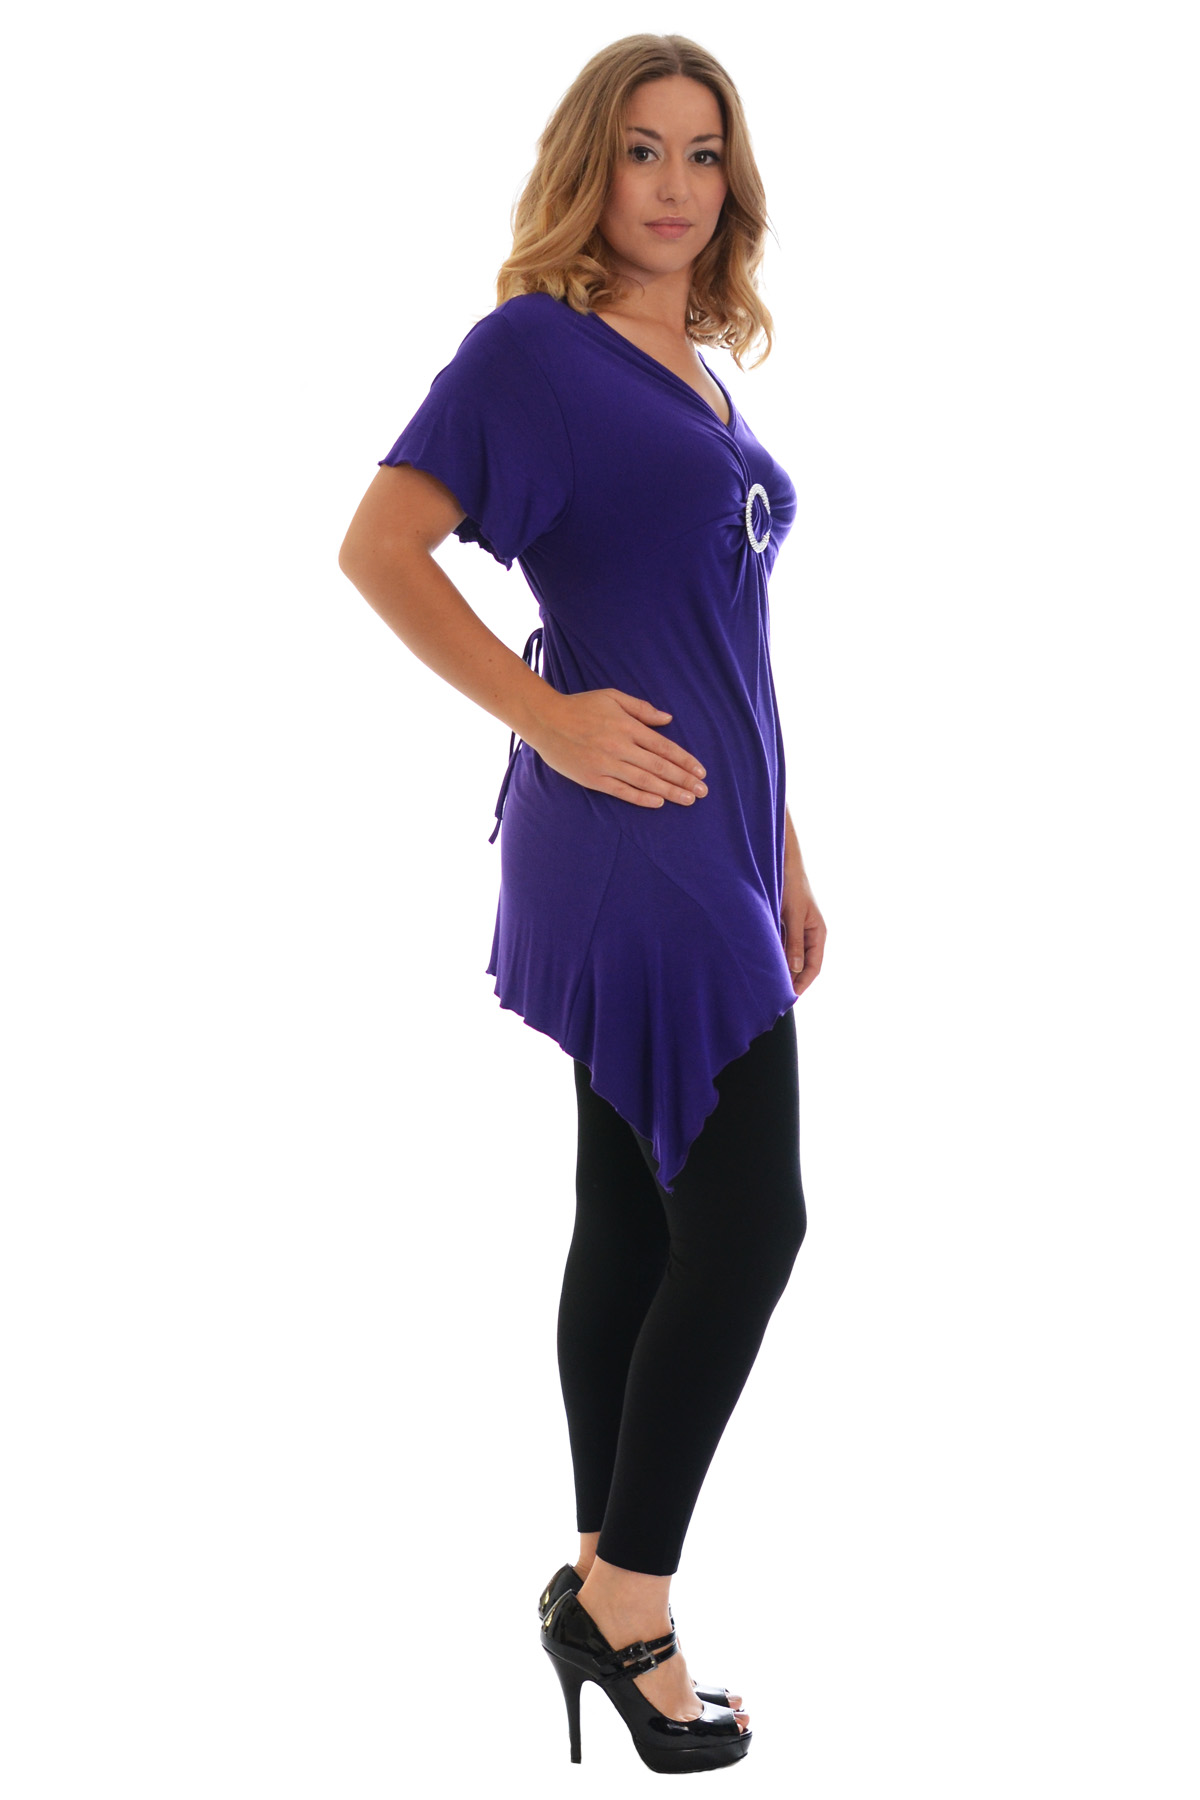 New-Womens-Plus-Size-Top-Ladies-T-Shirt-Buckle-Stud-A-Line-Asymmetric-Nouvelle thumbnail 20